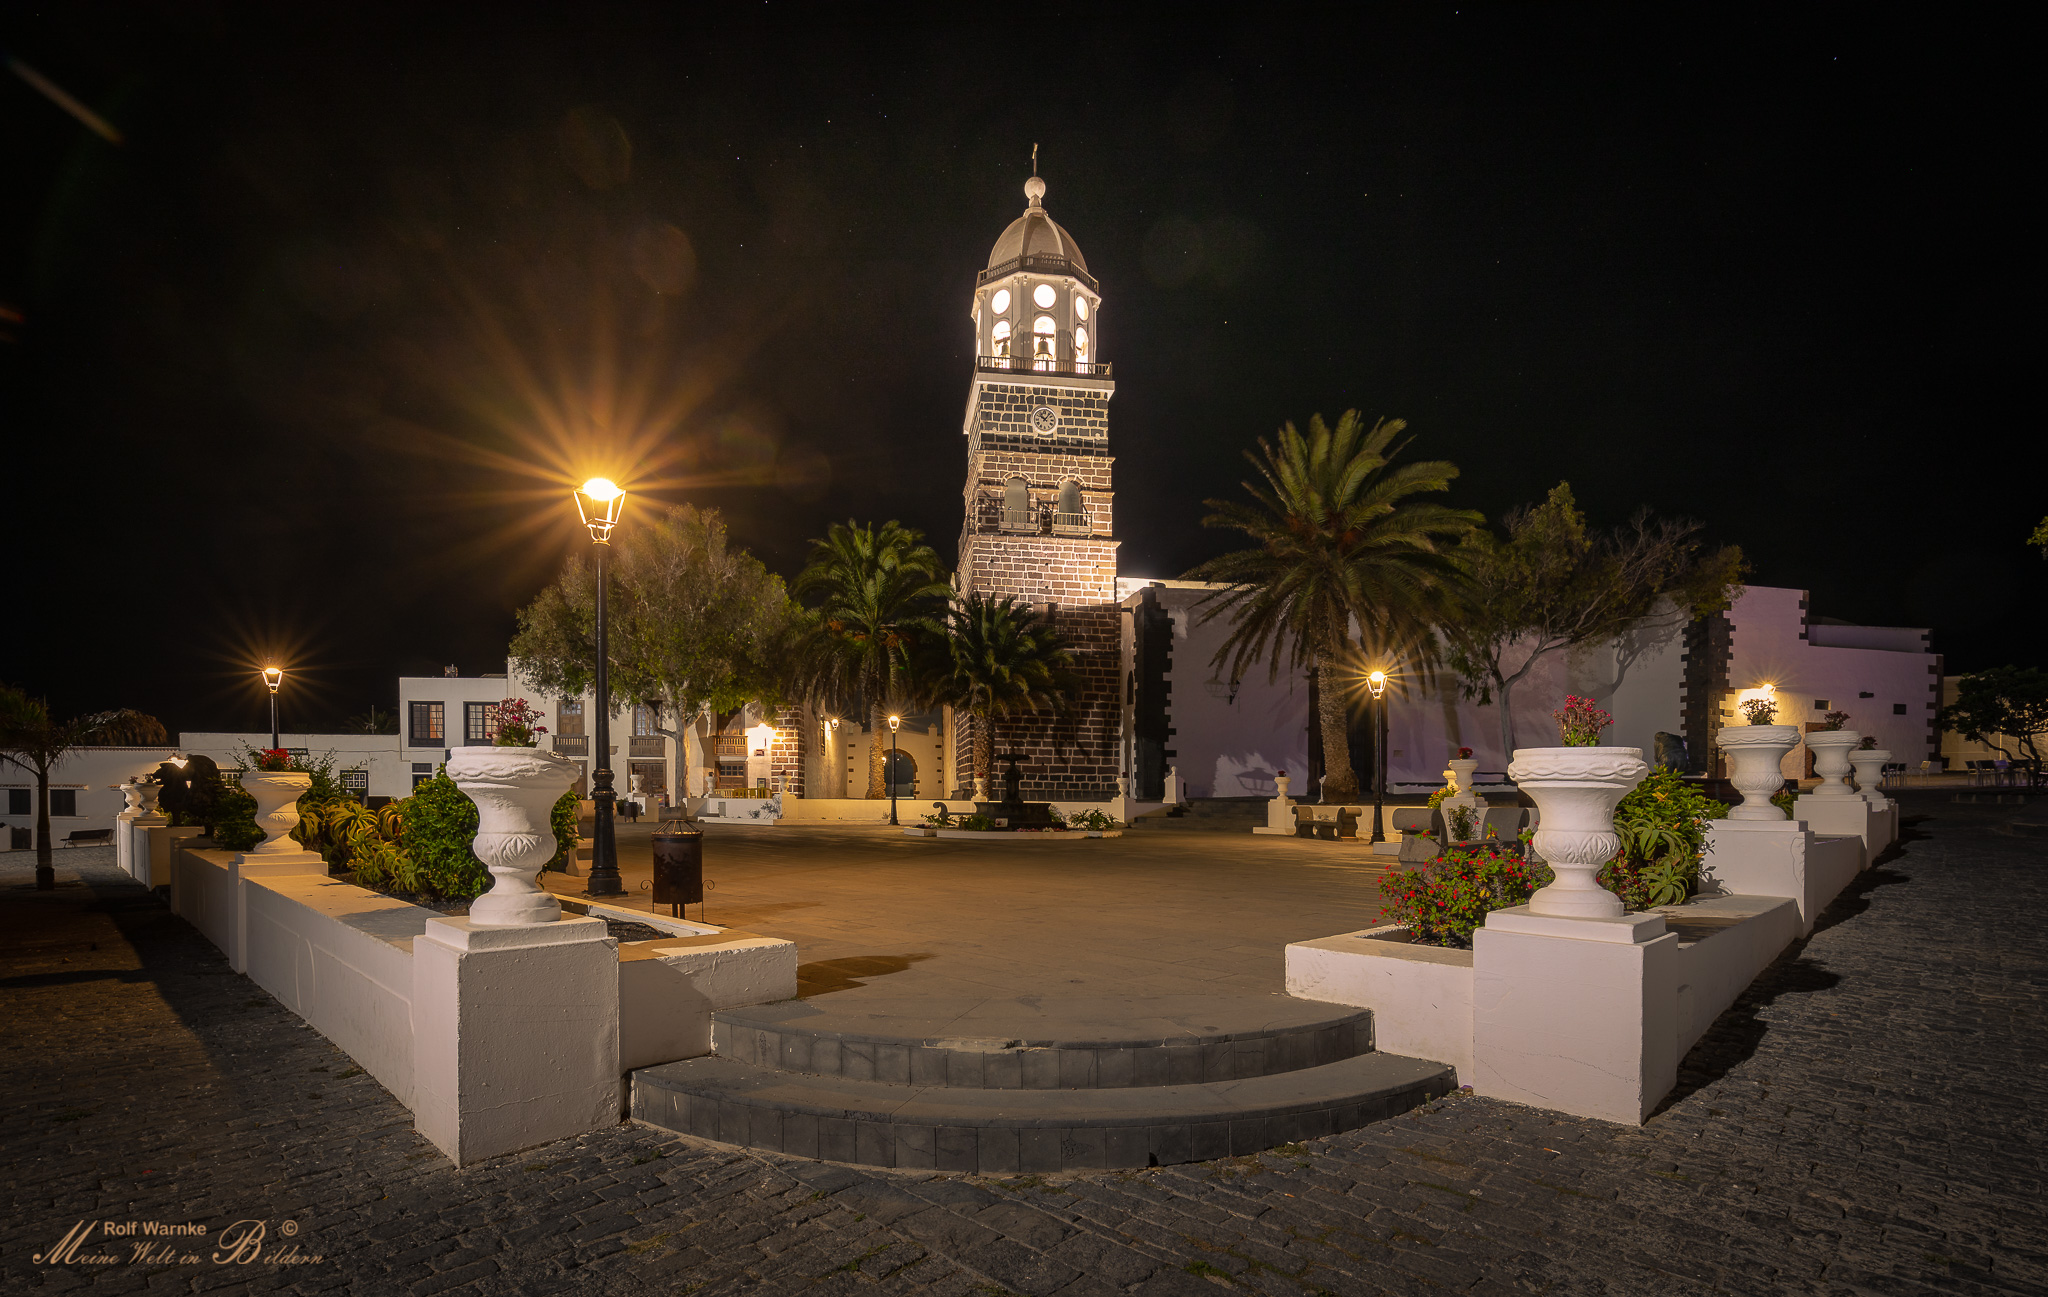 Teguise Marked, Spain